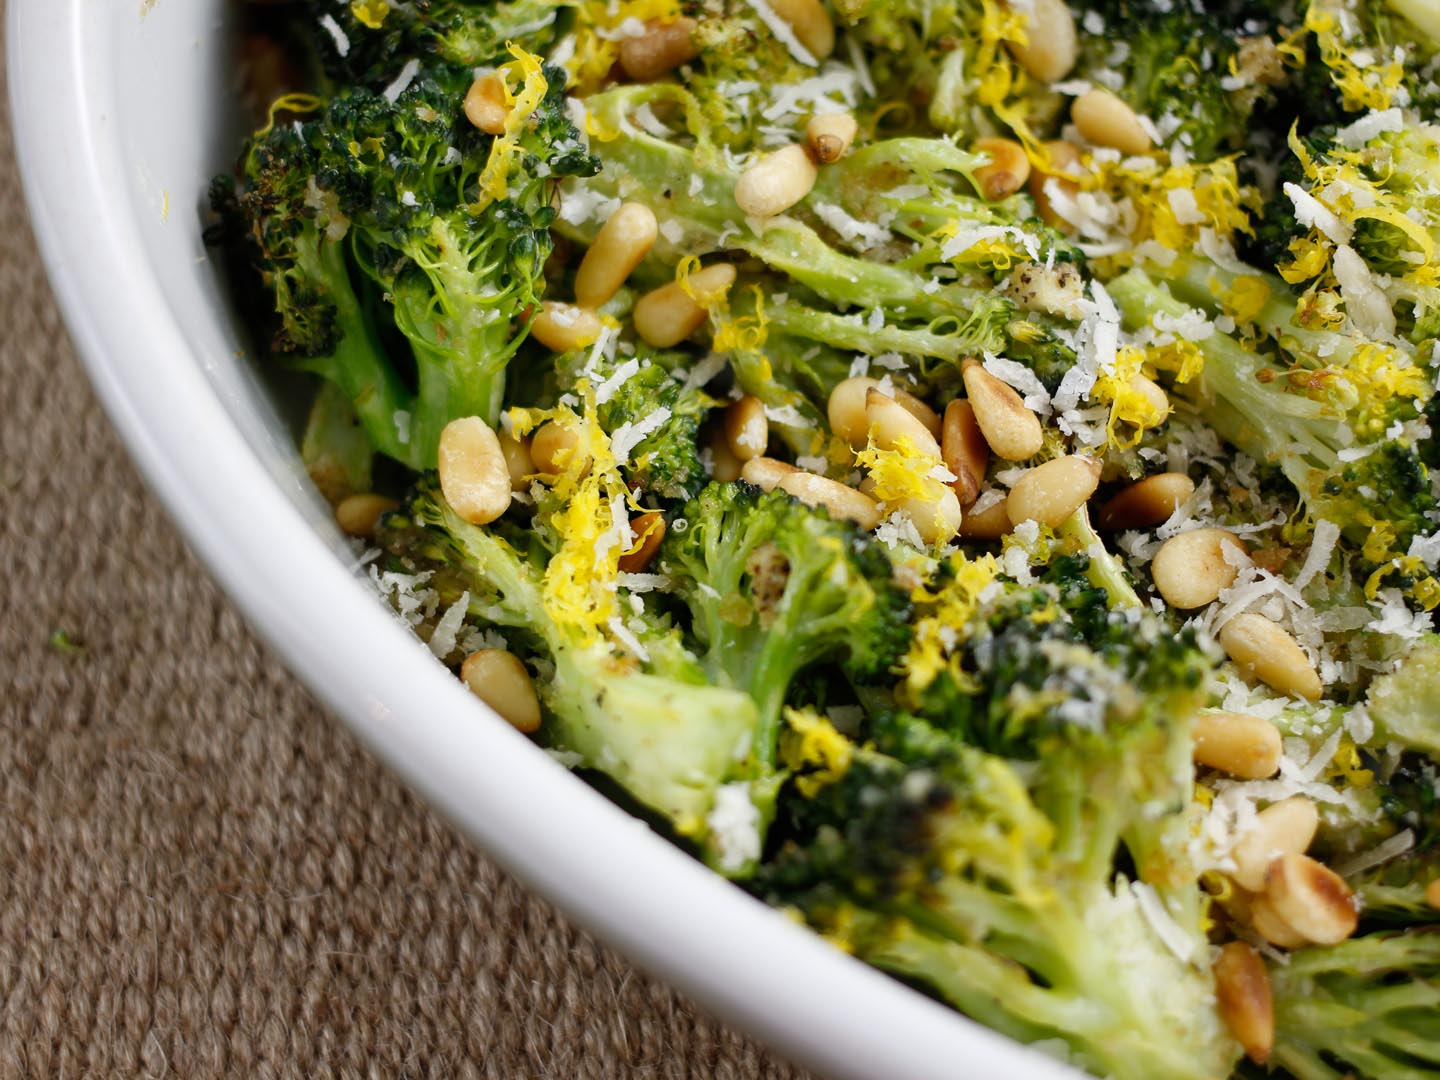 Spicy Garlic Broccoli With Pine Nuts Recipes Dr Weil S Healthy Kitchen